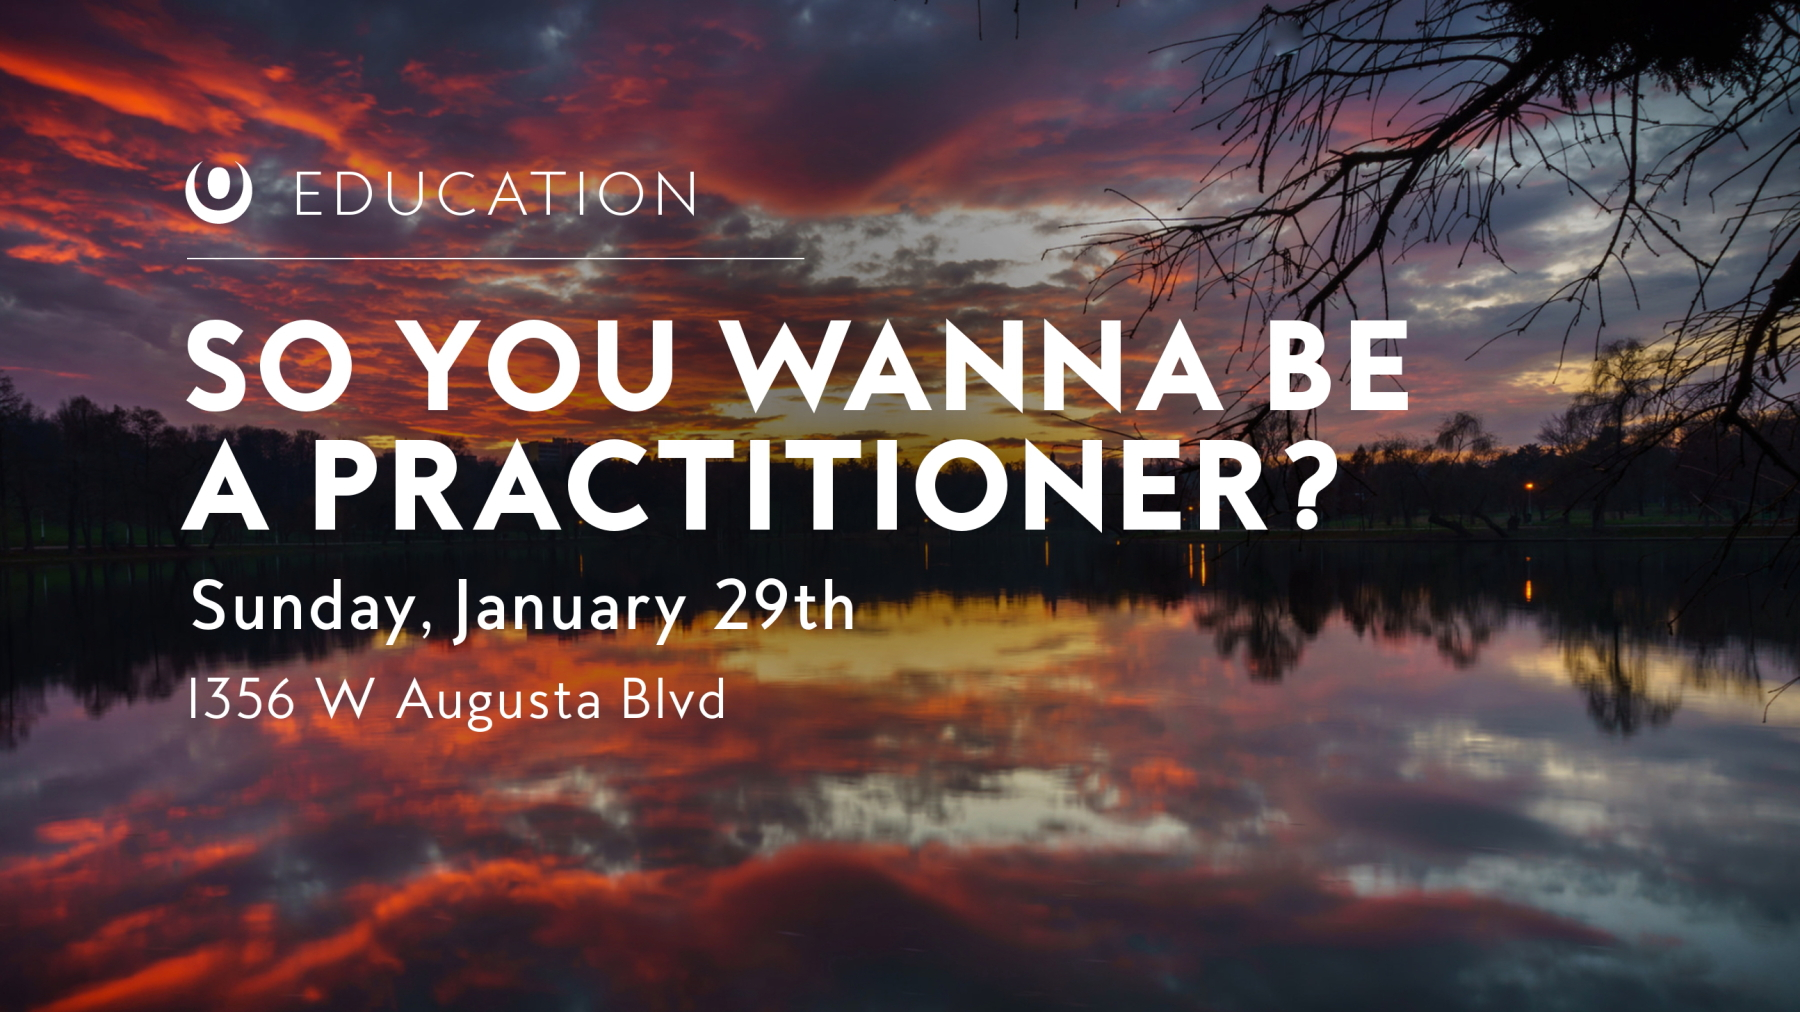 So You Wanna Be a Practitioner?